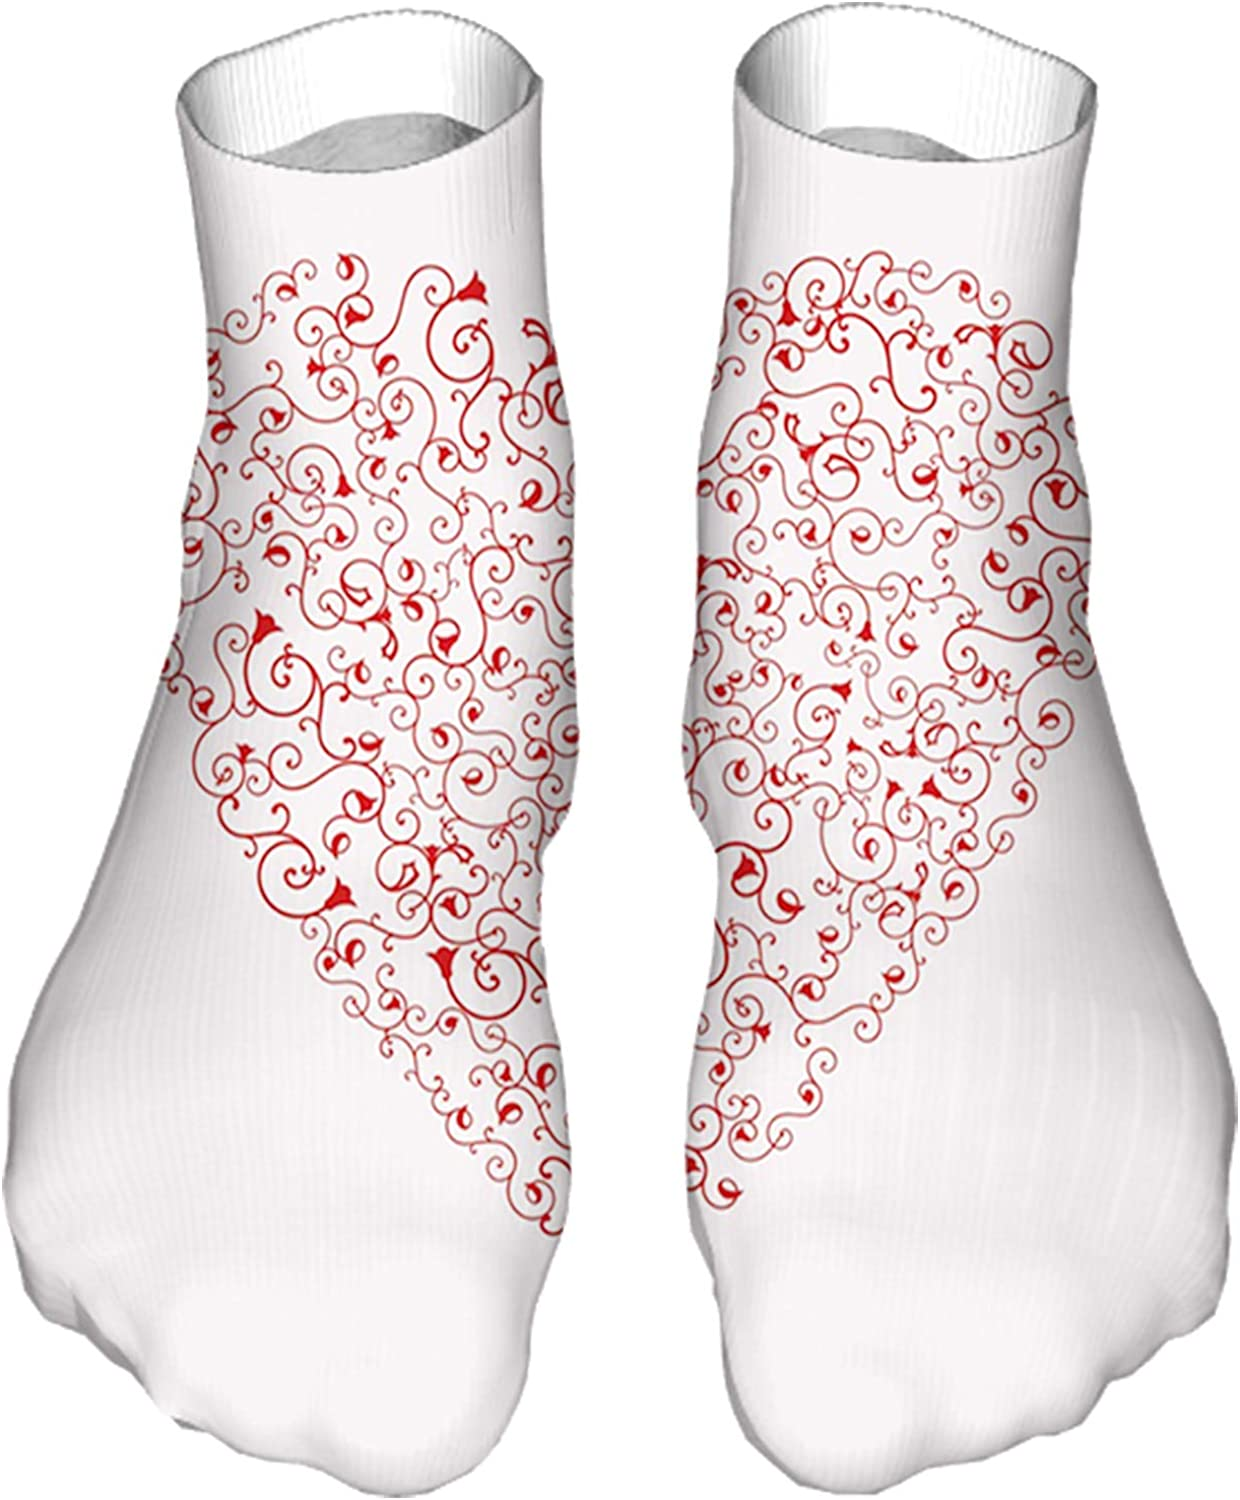 Men's and Women's Fun Socks Printed Cool Novelty Funny Socks,Composition of Swirls Heart on Pastel Colored Background